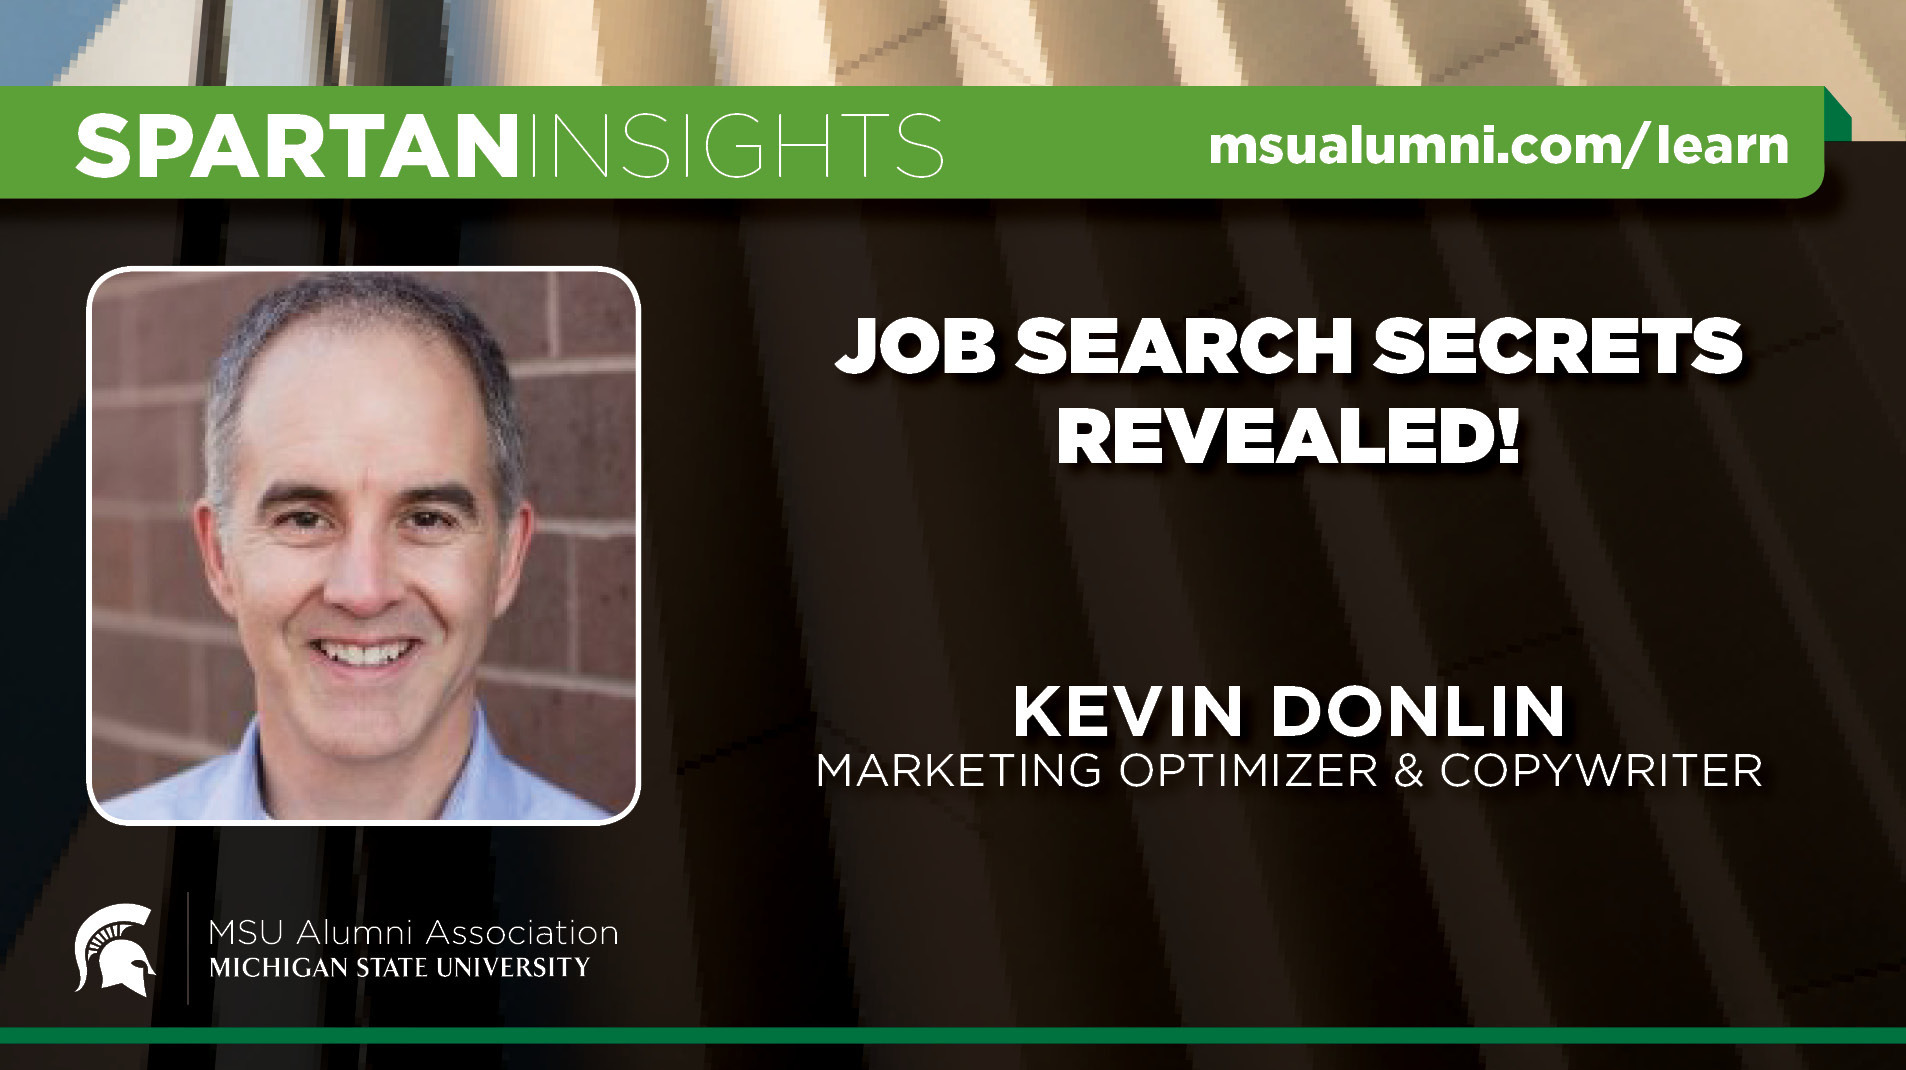 webinar cover image for Kevin Donlin | Job Search Secrets Revealed